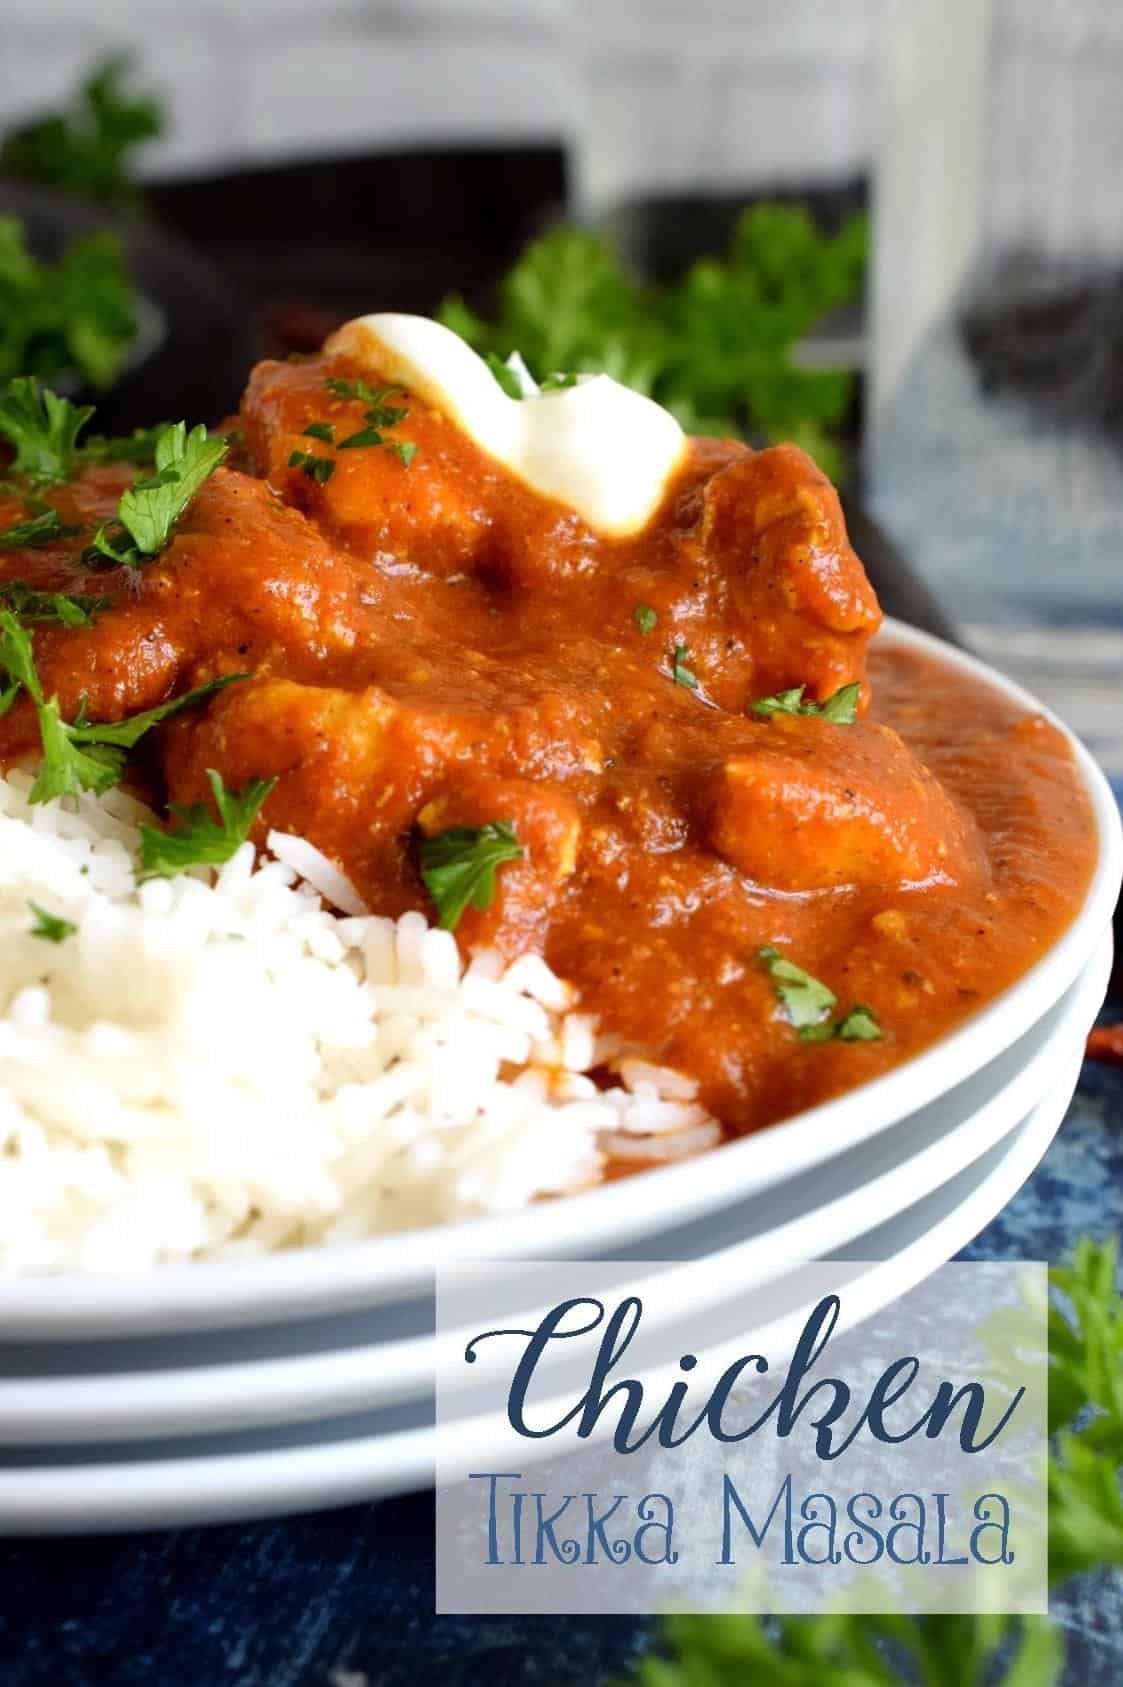 Chicken tikka masala lord byrons kitchen tender chicken breast pieces marinated in yogurt and spices and simmered in a thick luscious curry sauce why go out for indian food when you can stay at forumfinder Choice Image